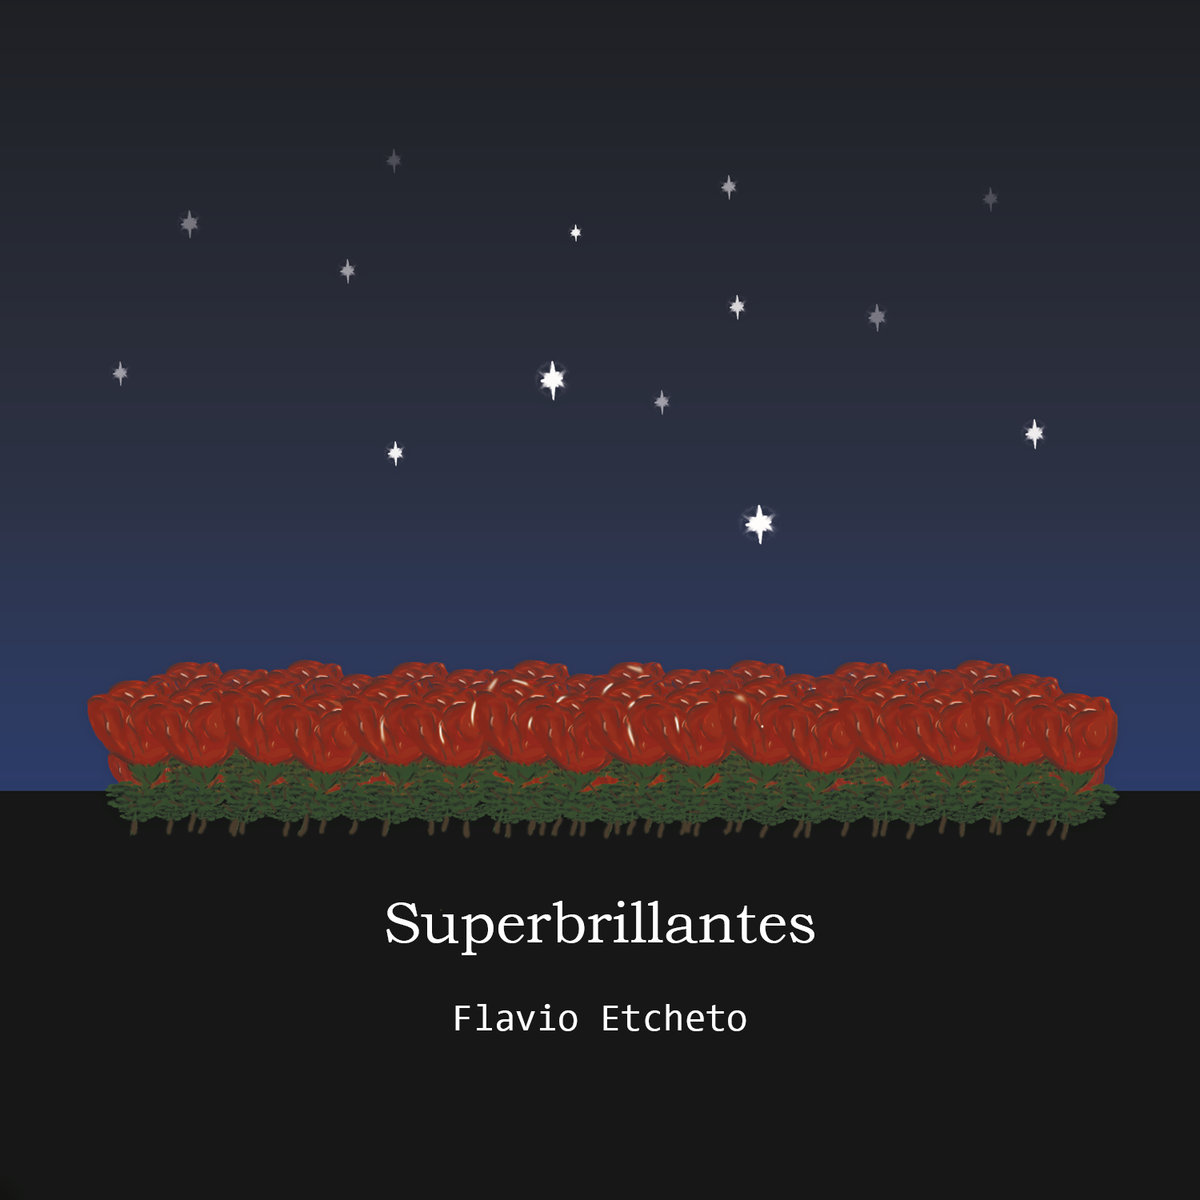 Superbrillantes